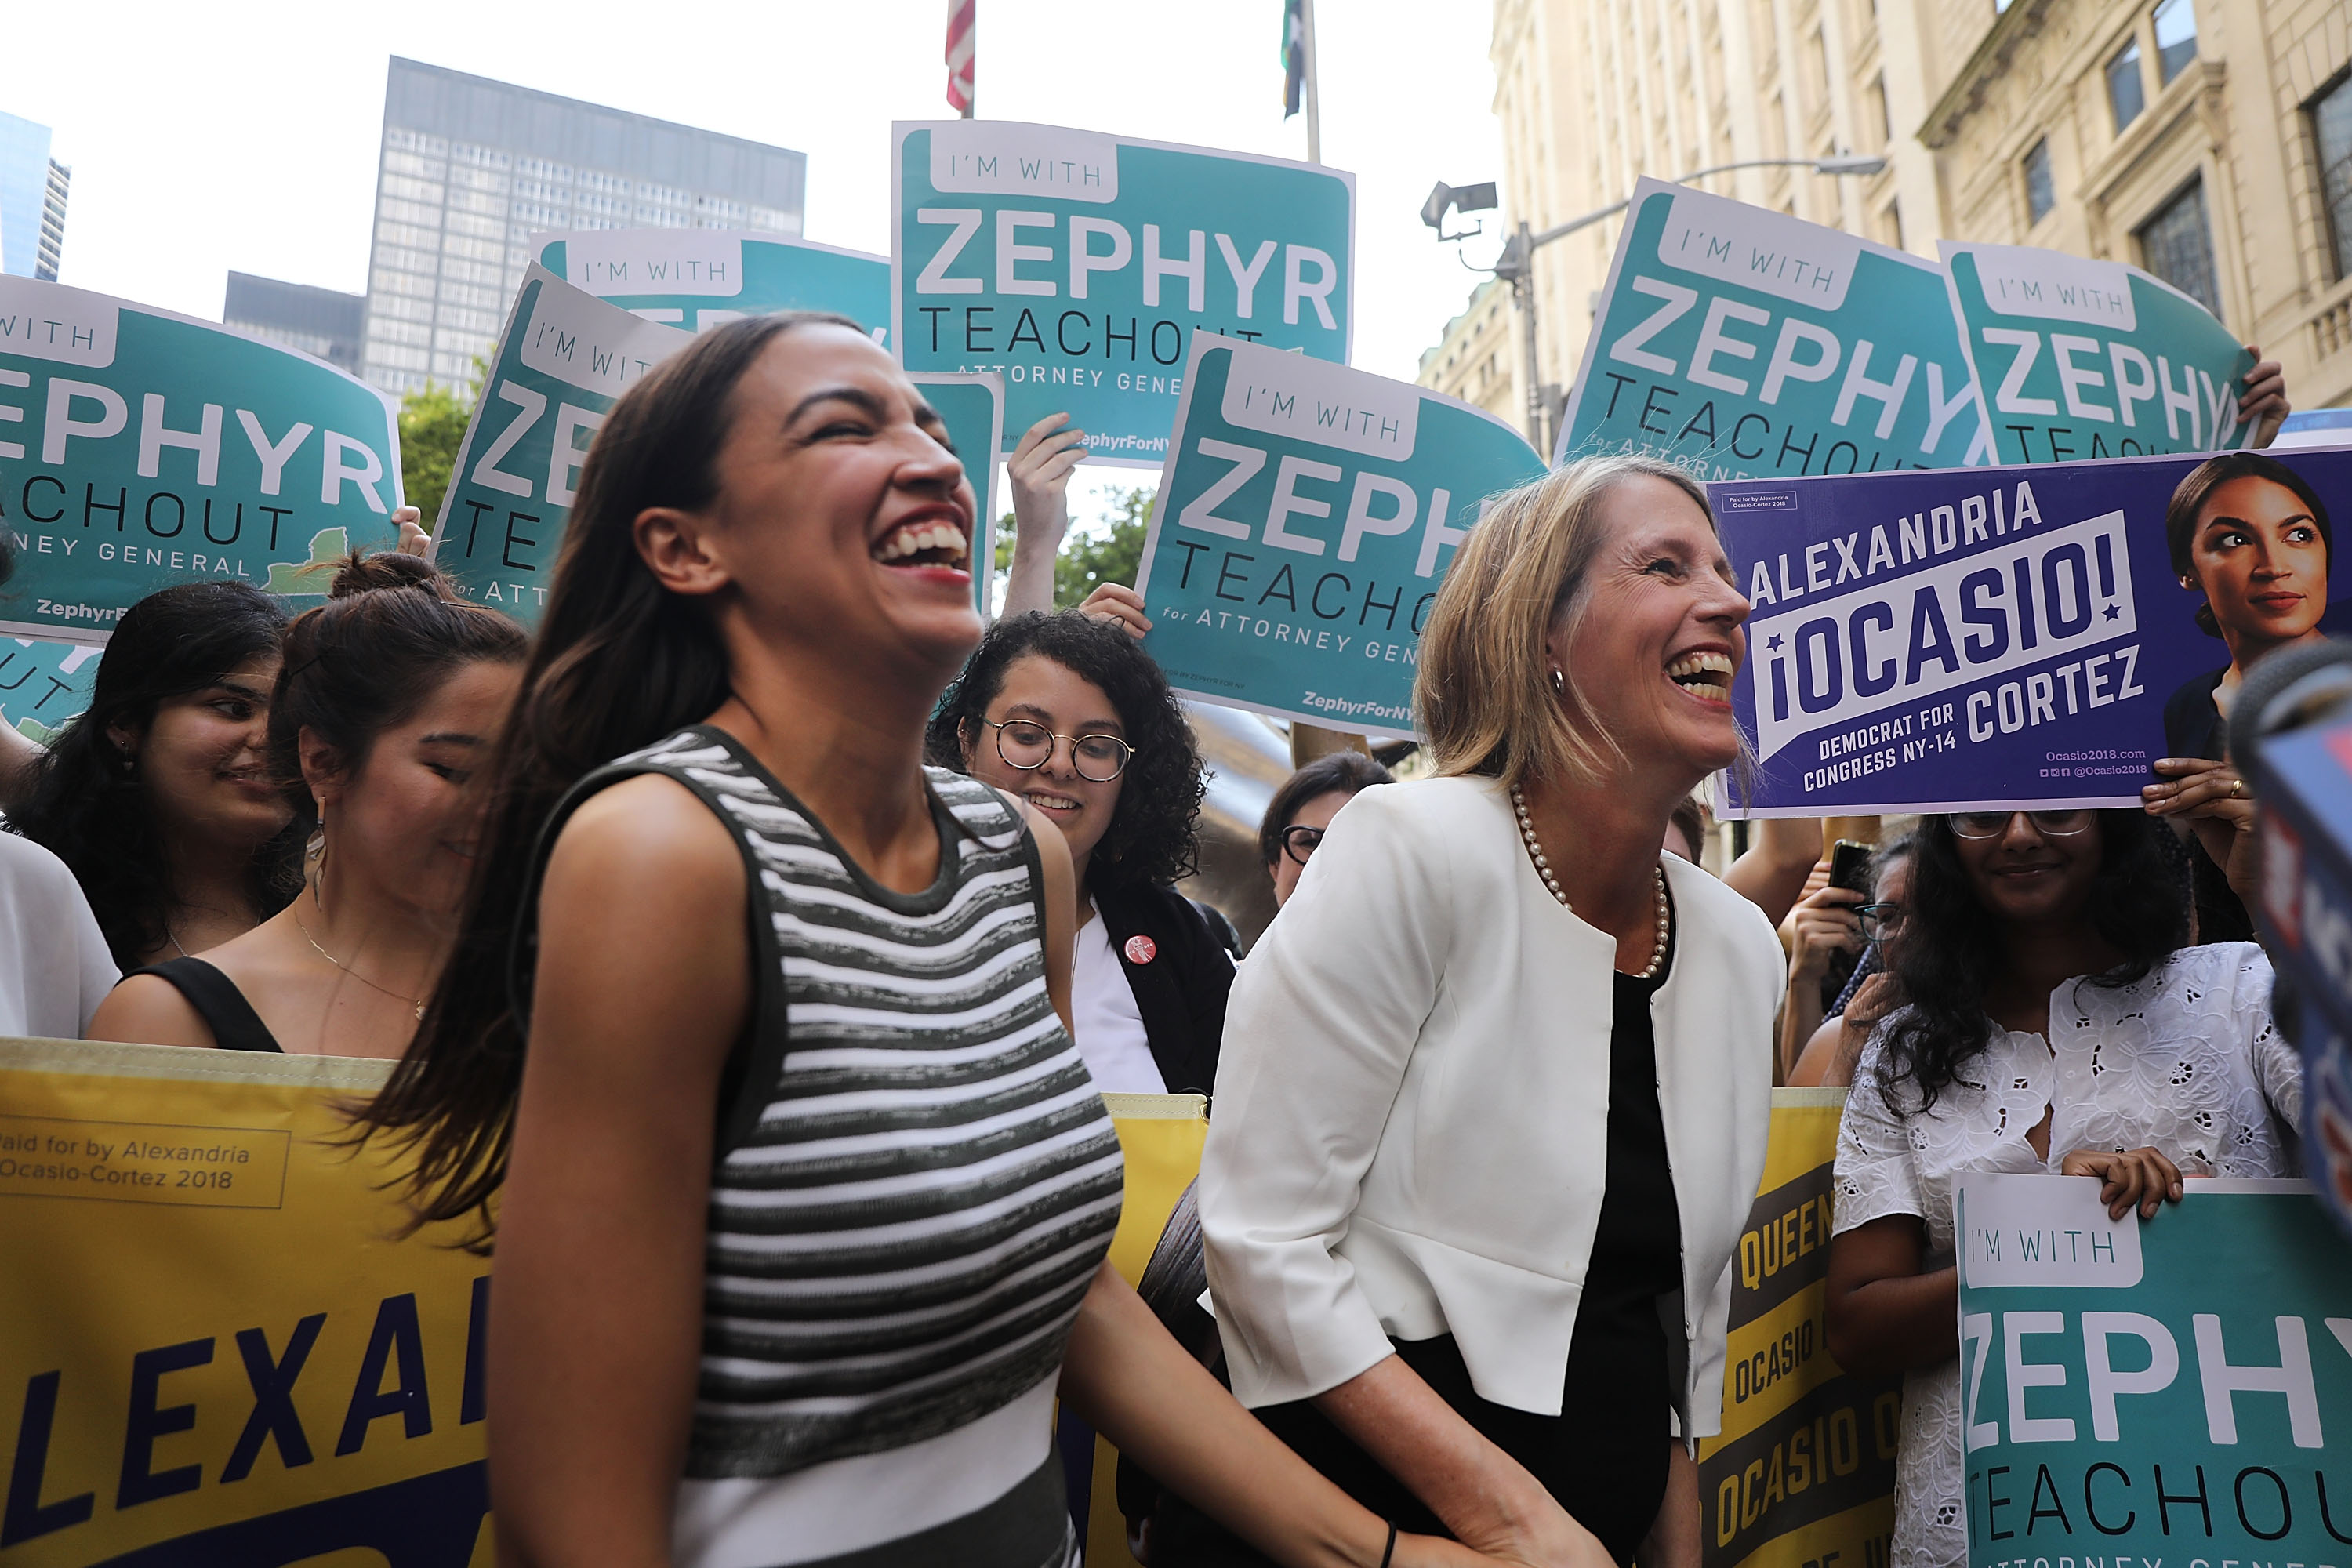 Congressional nominee Alexandria Ocasio-Cortez (L) stands with Zephyr Teachout.